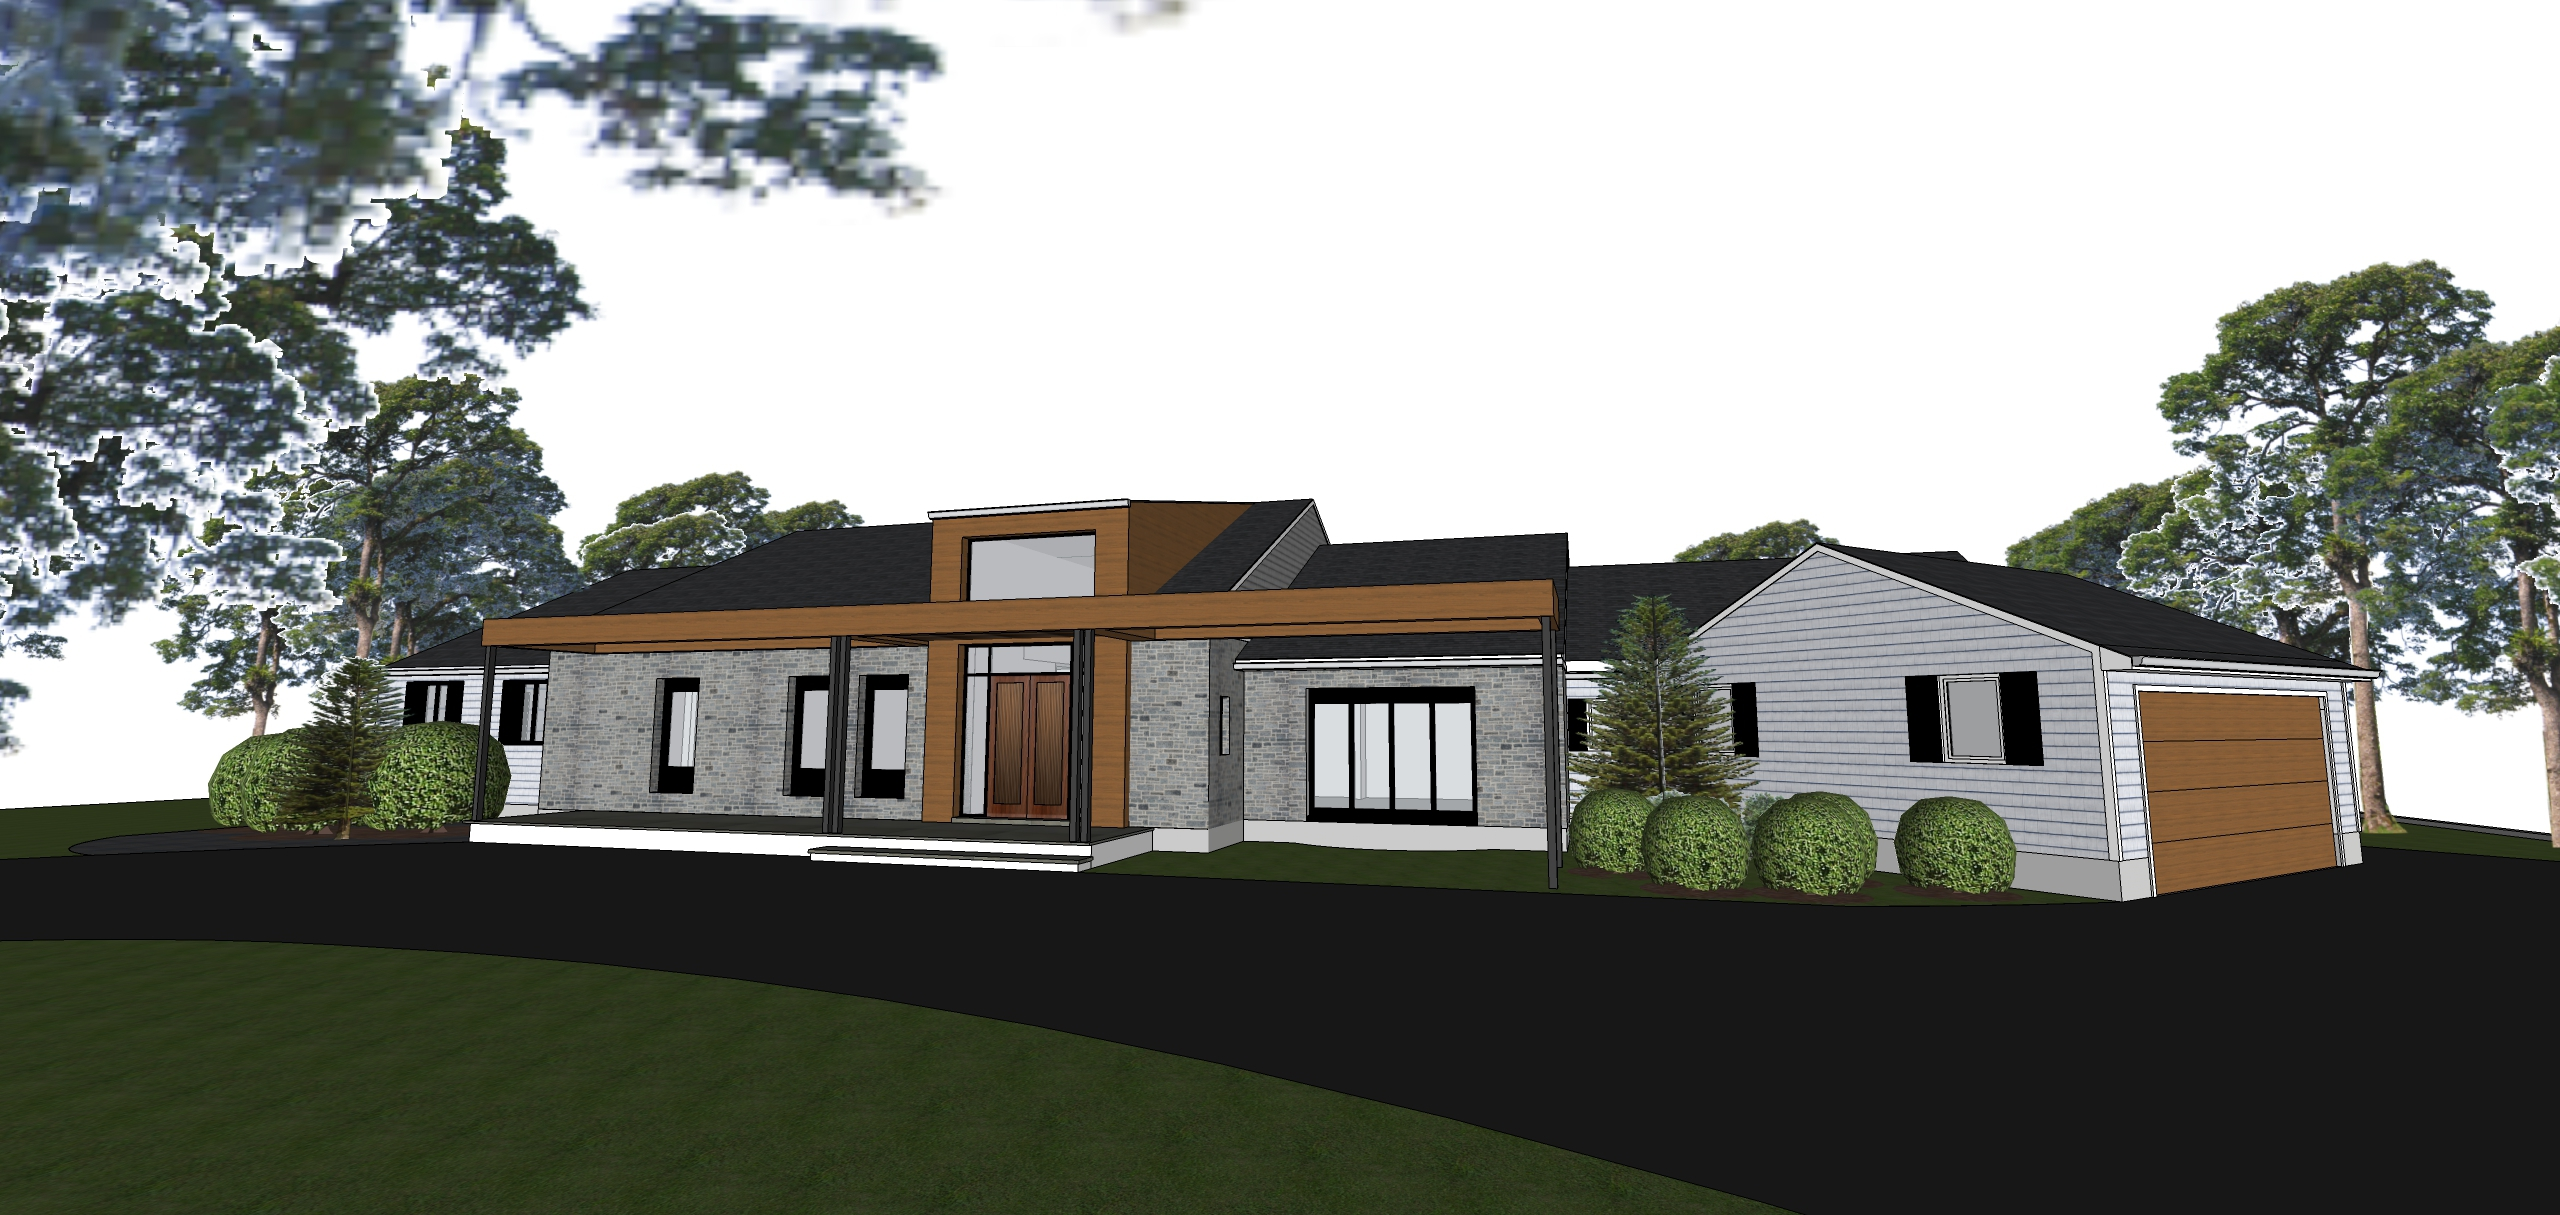 Proposed Exterior Front A redesigned front creates a more modern impression and better harmonizes with the interior.